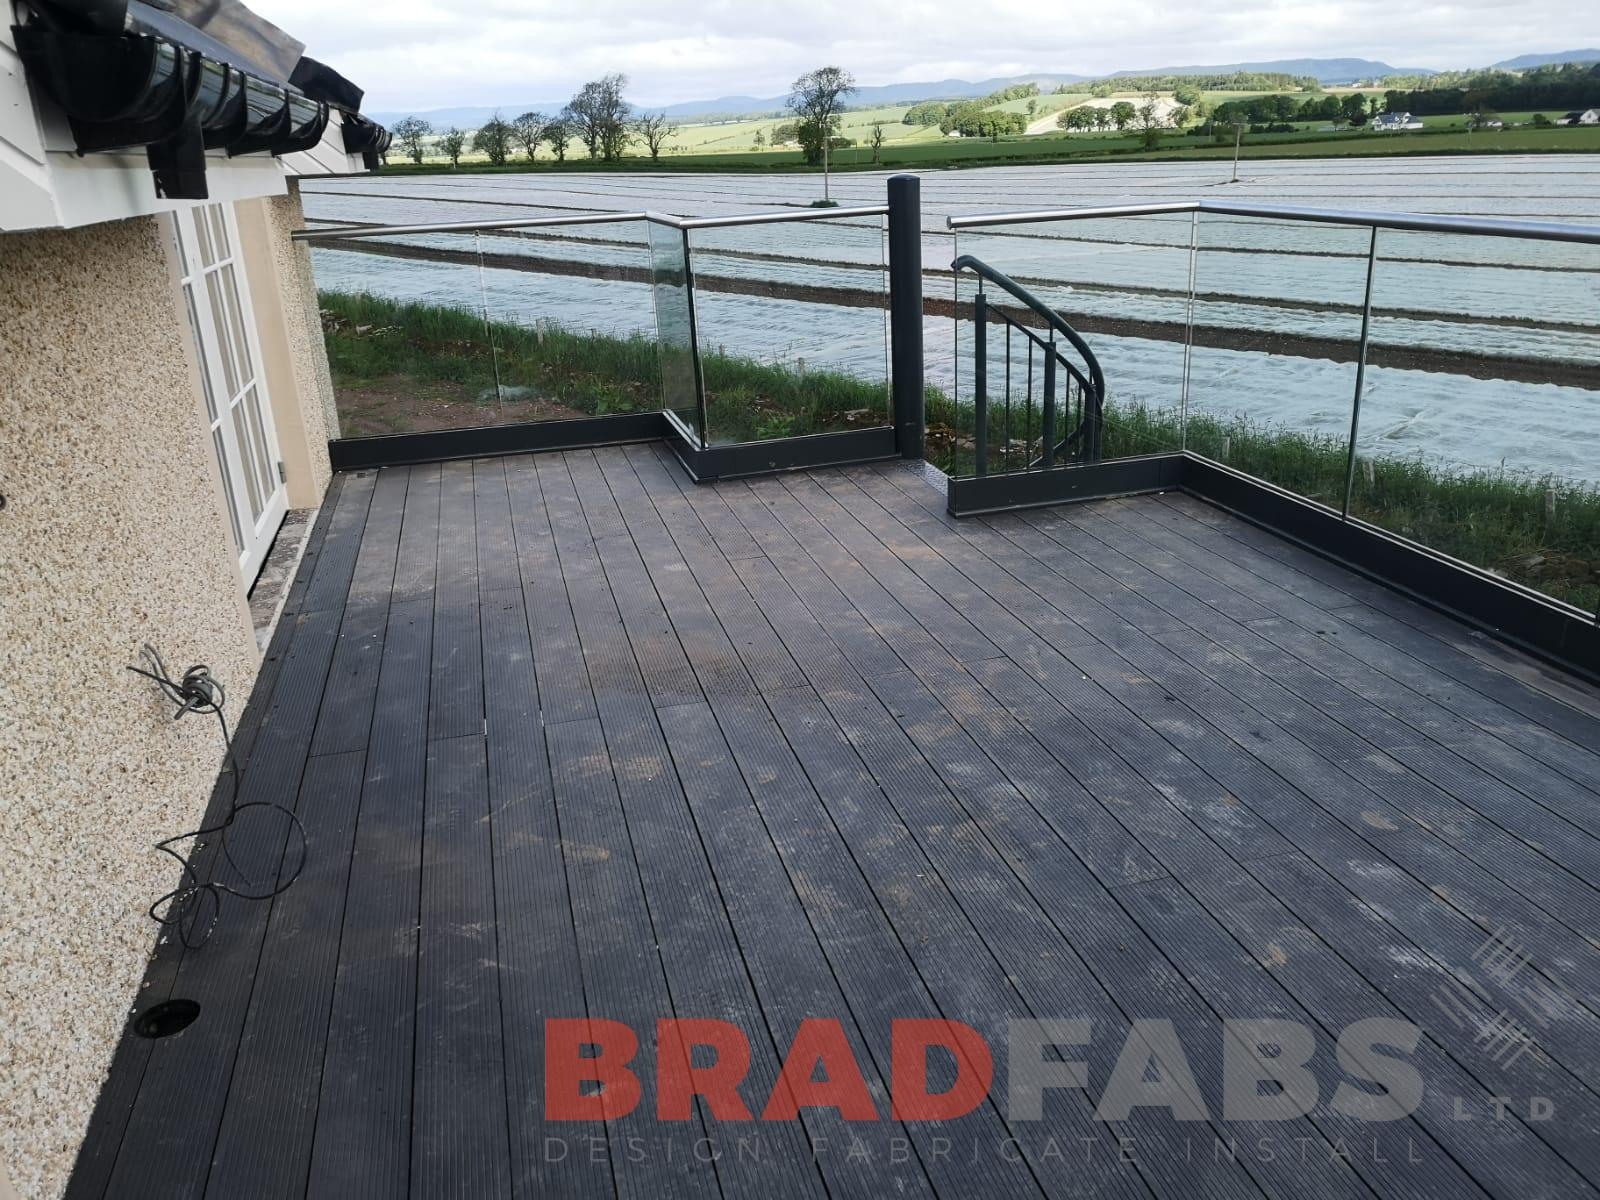 Our customers composite decked flooring and infinity glass balustrade and stainless steel handrail ready to over look their amazing views by Bradfabs